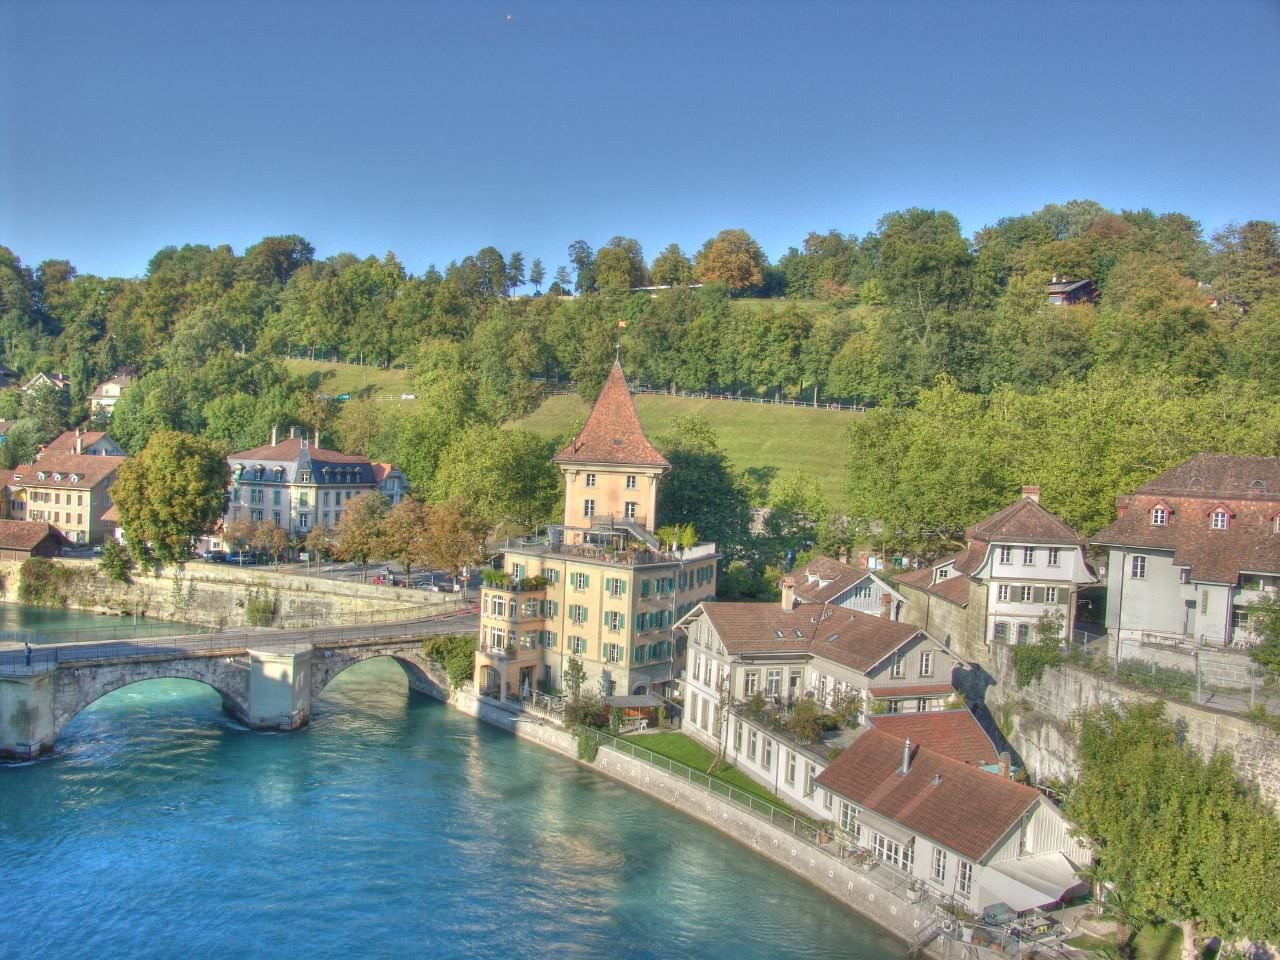 Bern Pictures Photo Gallery of Bern HighQuality Collection